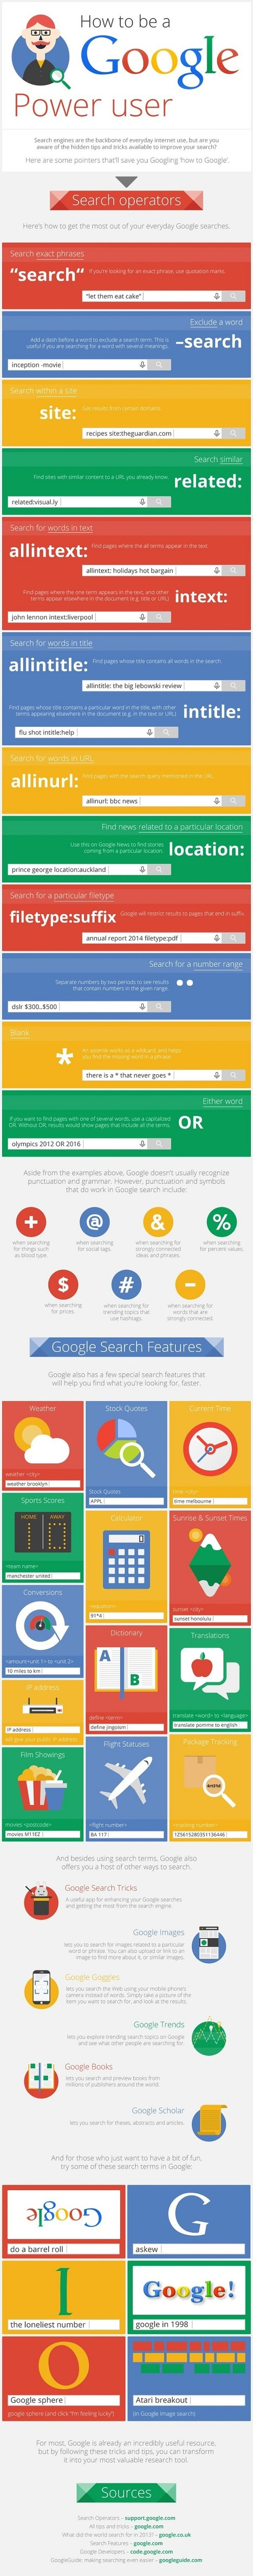 Une infographie pour bien utiliser Google Search | Better know and better use Social Media today (facebook, twitter...) | Scoop.it